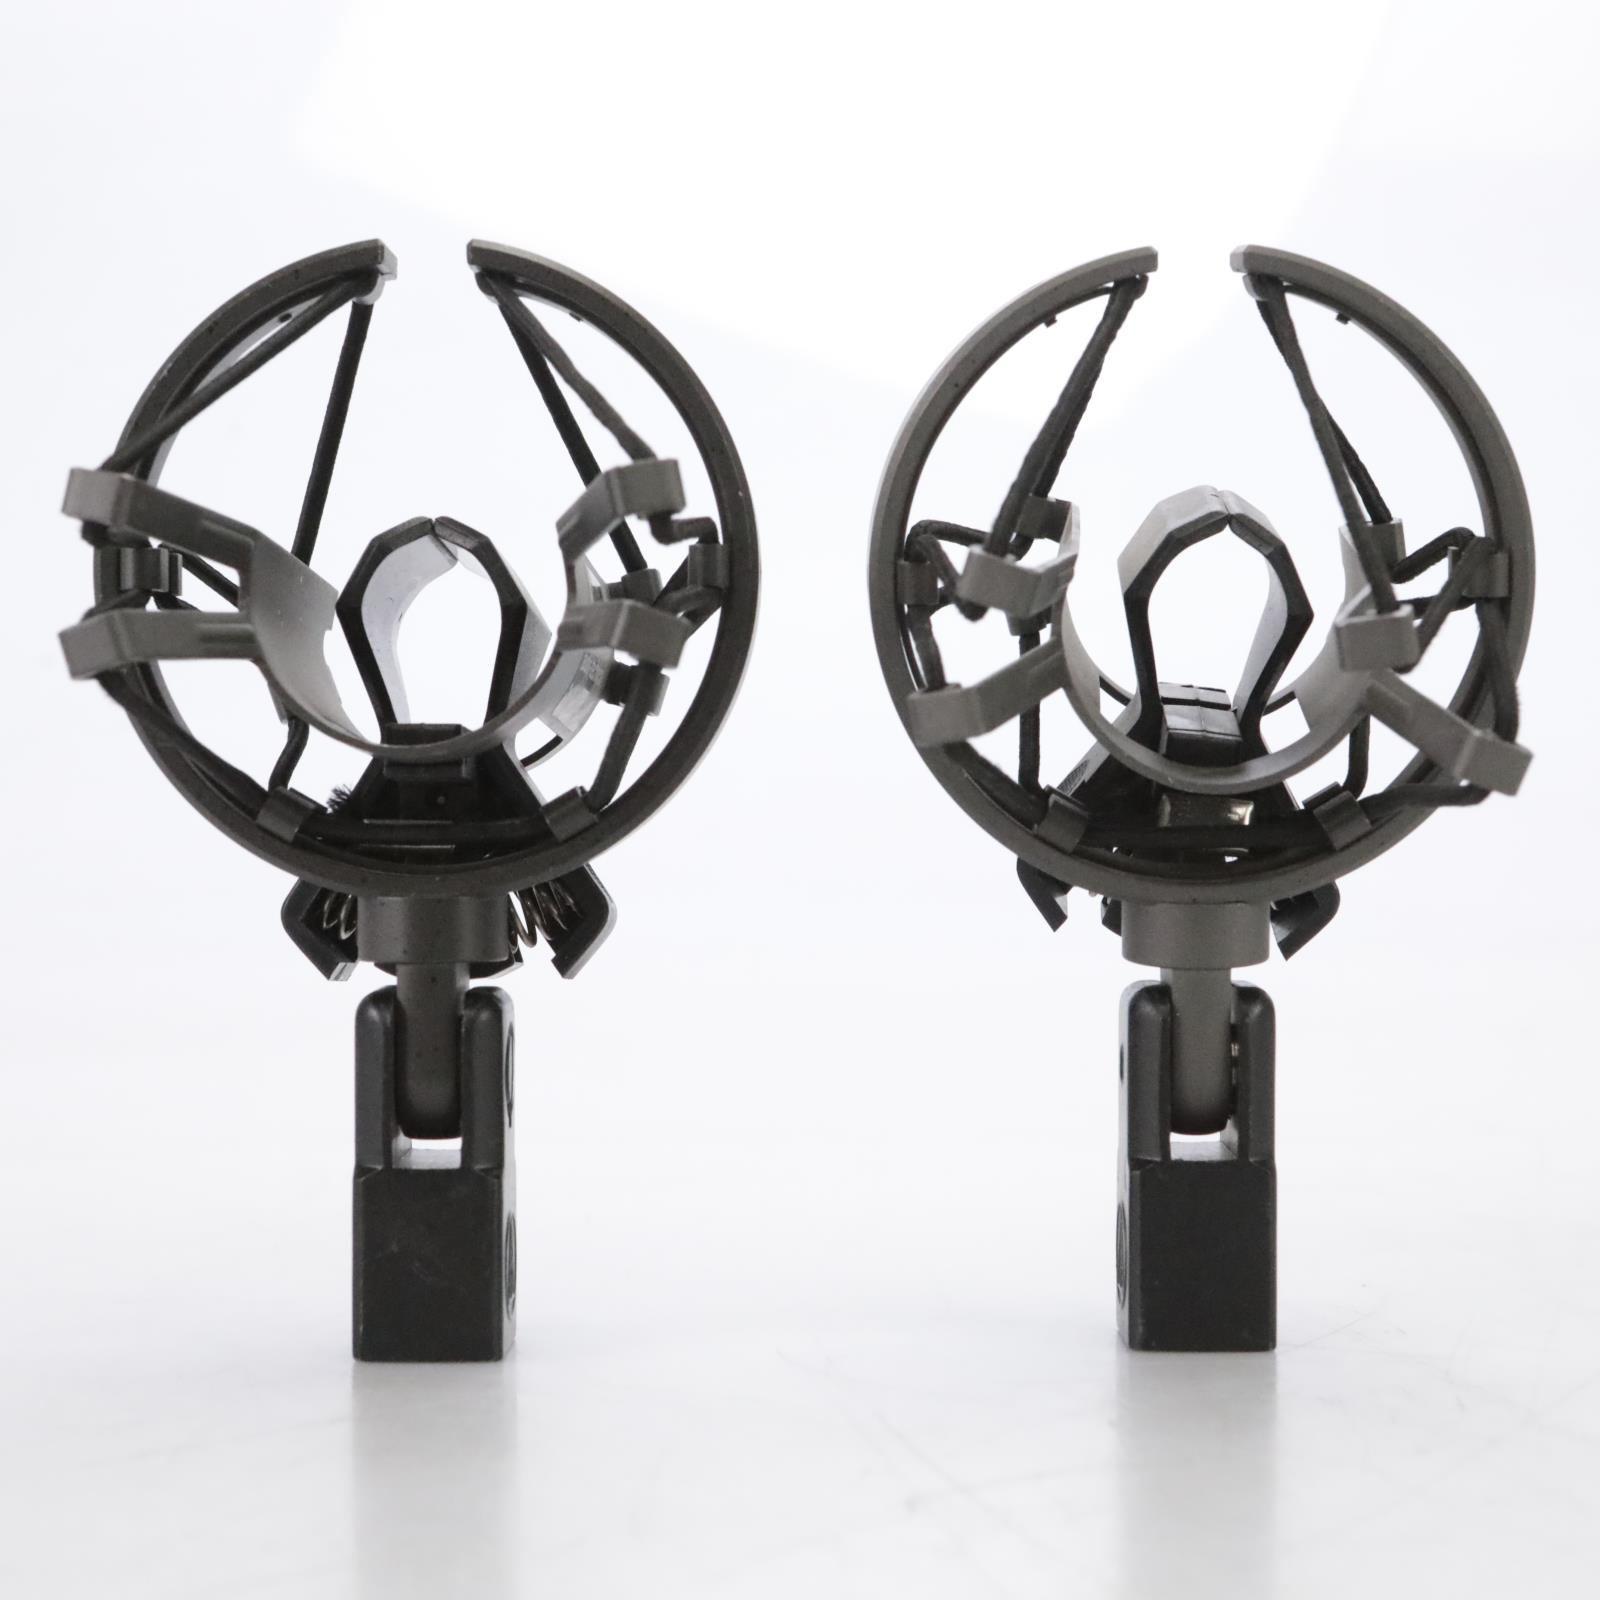 2 Audio-Technica AT8410a Microphone Shockmounts #45064